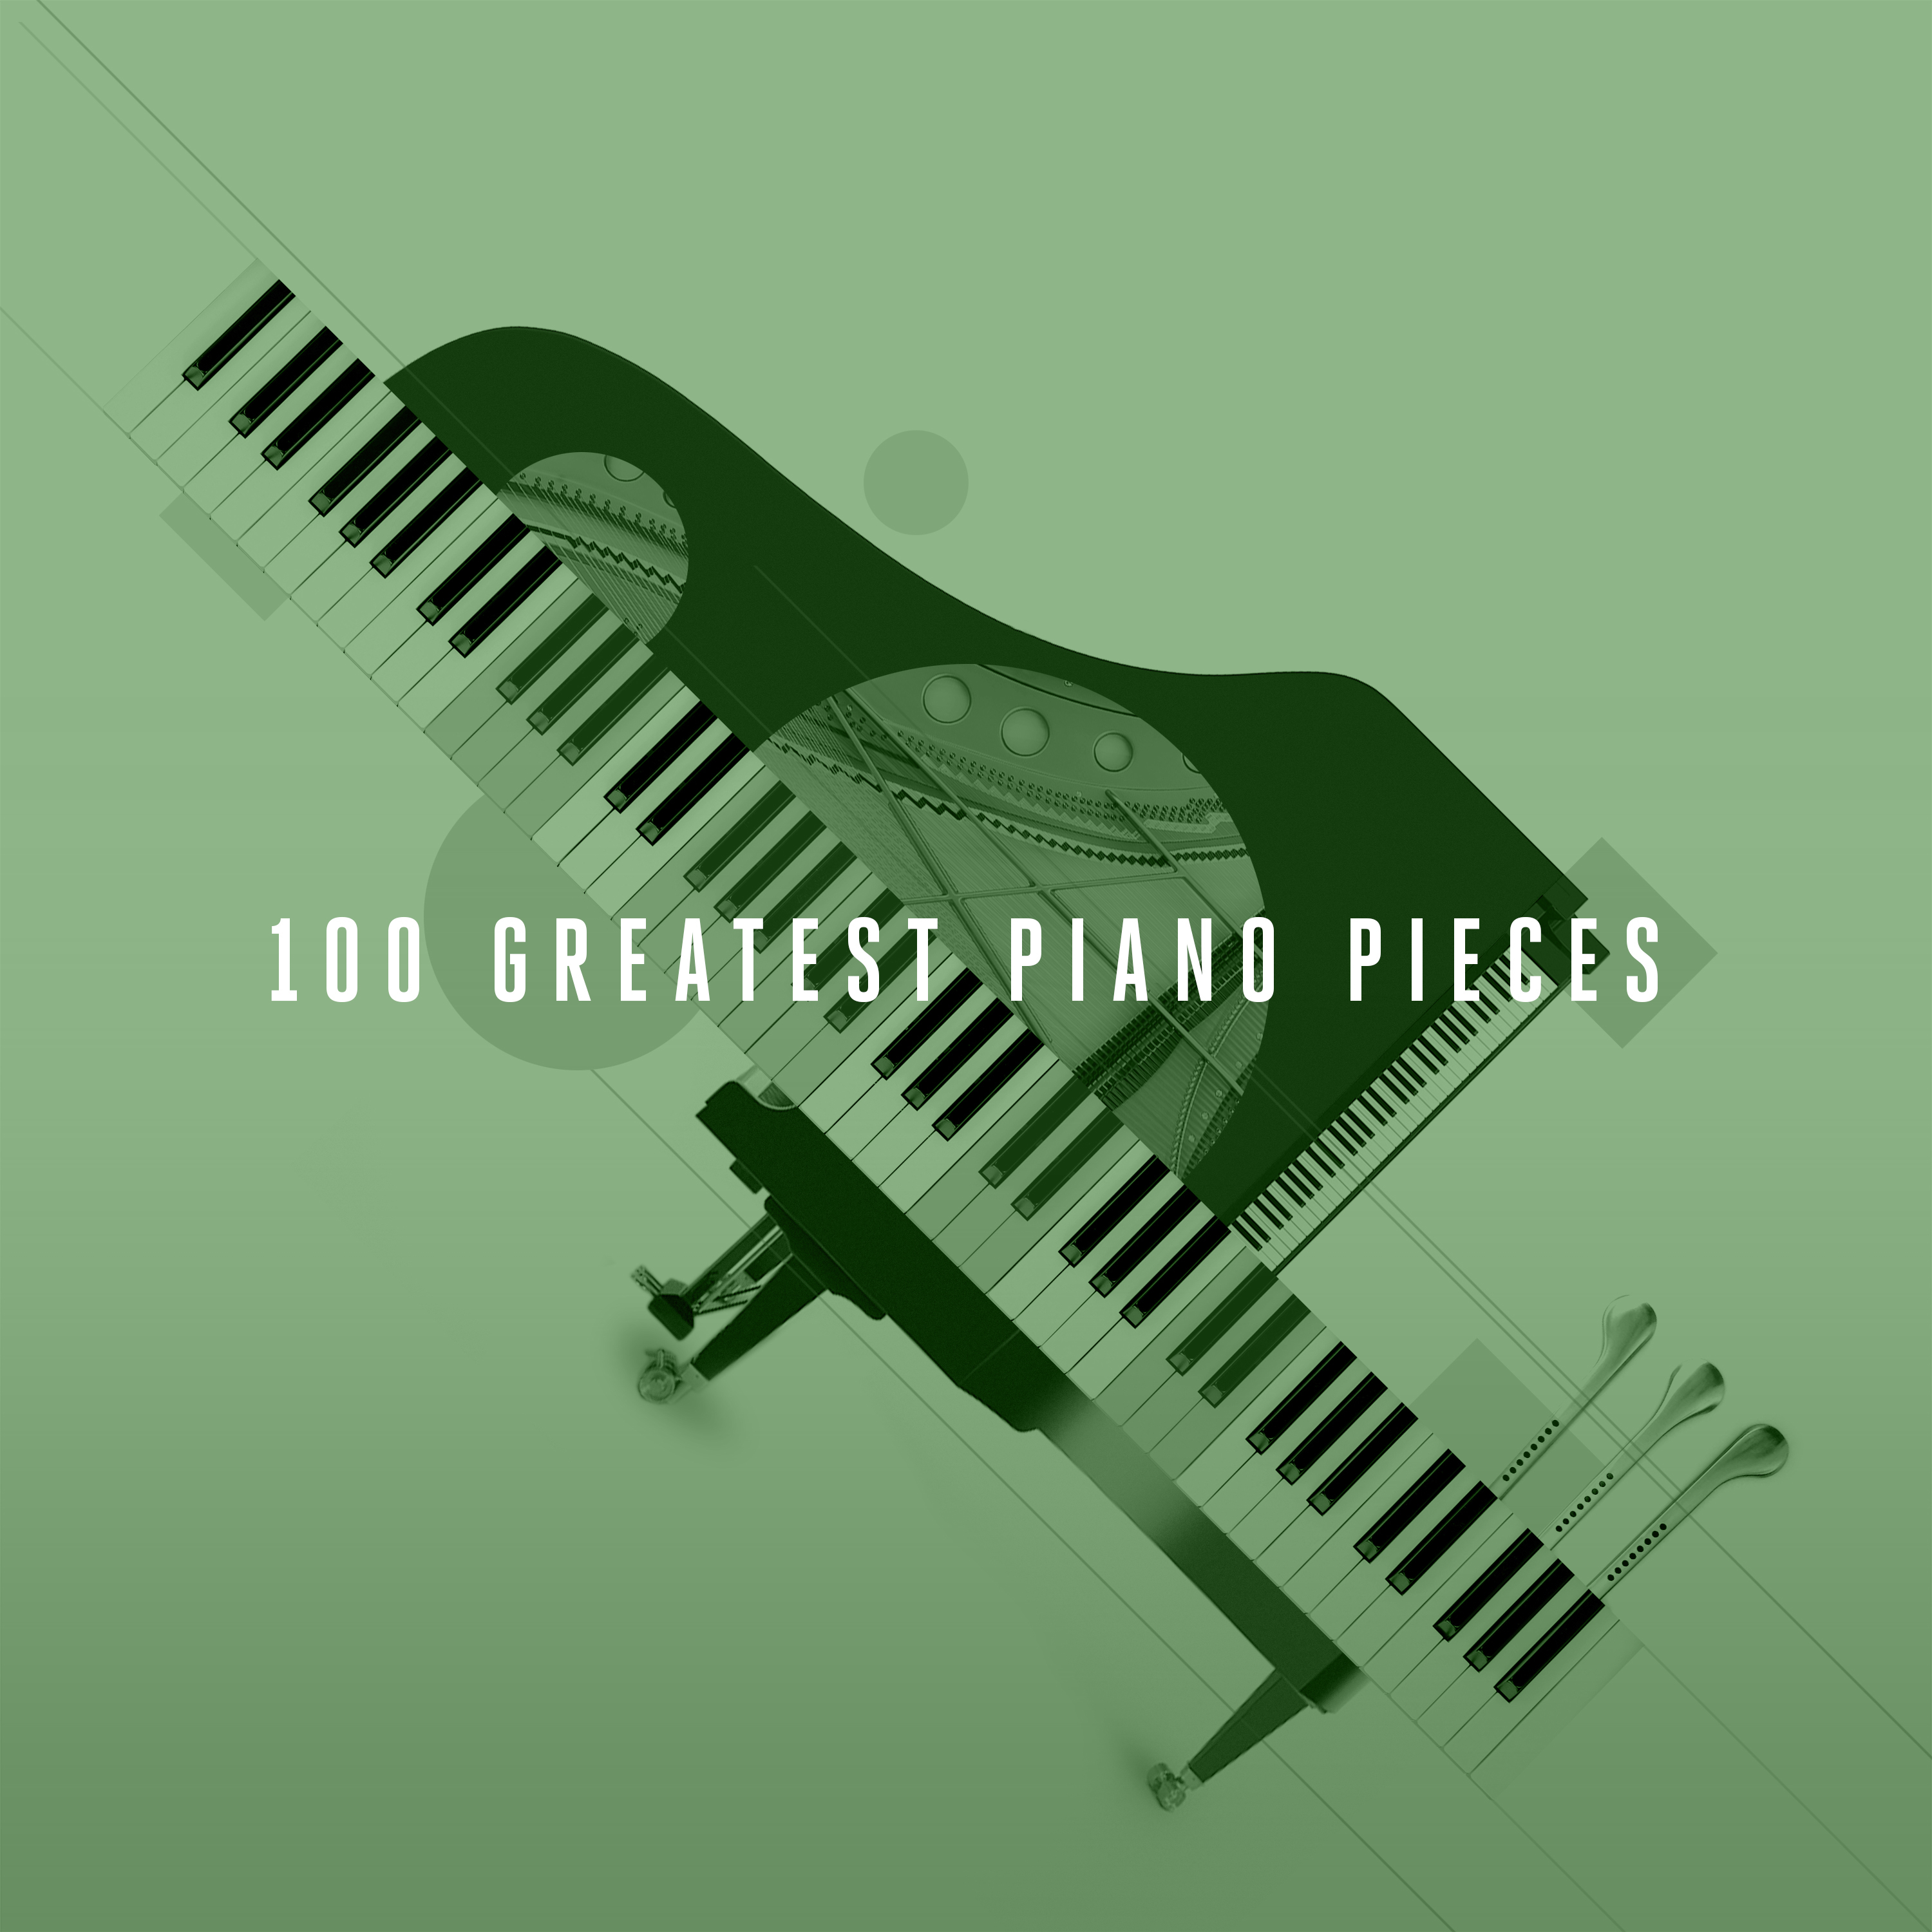 100 Greatest Piano Pieces